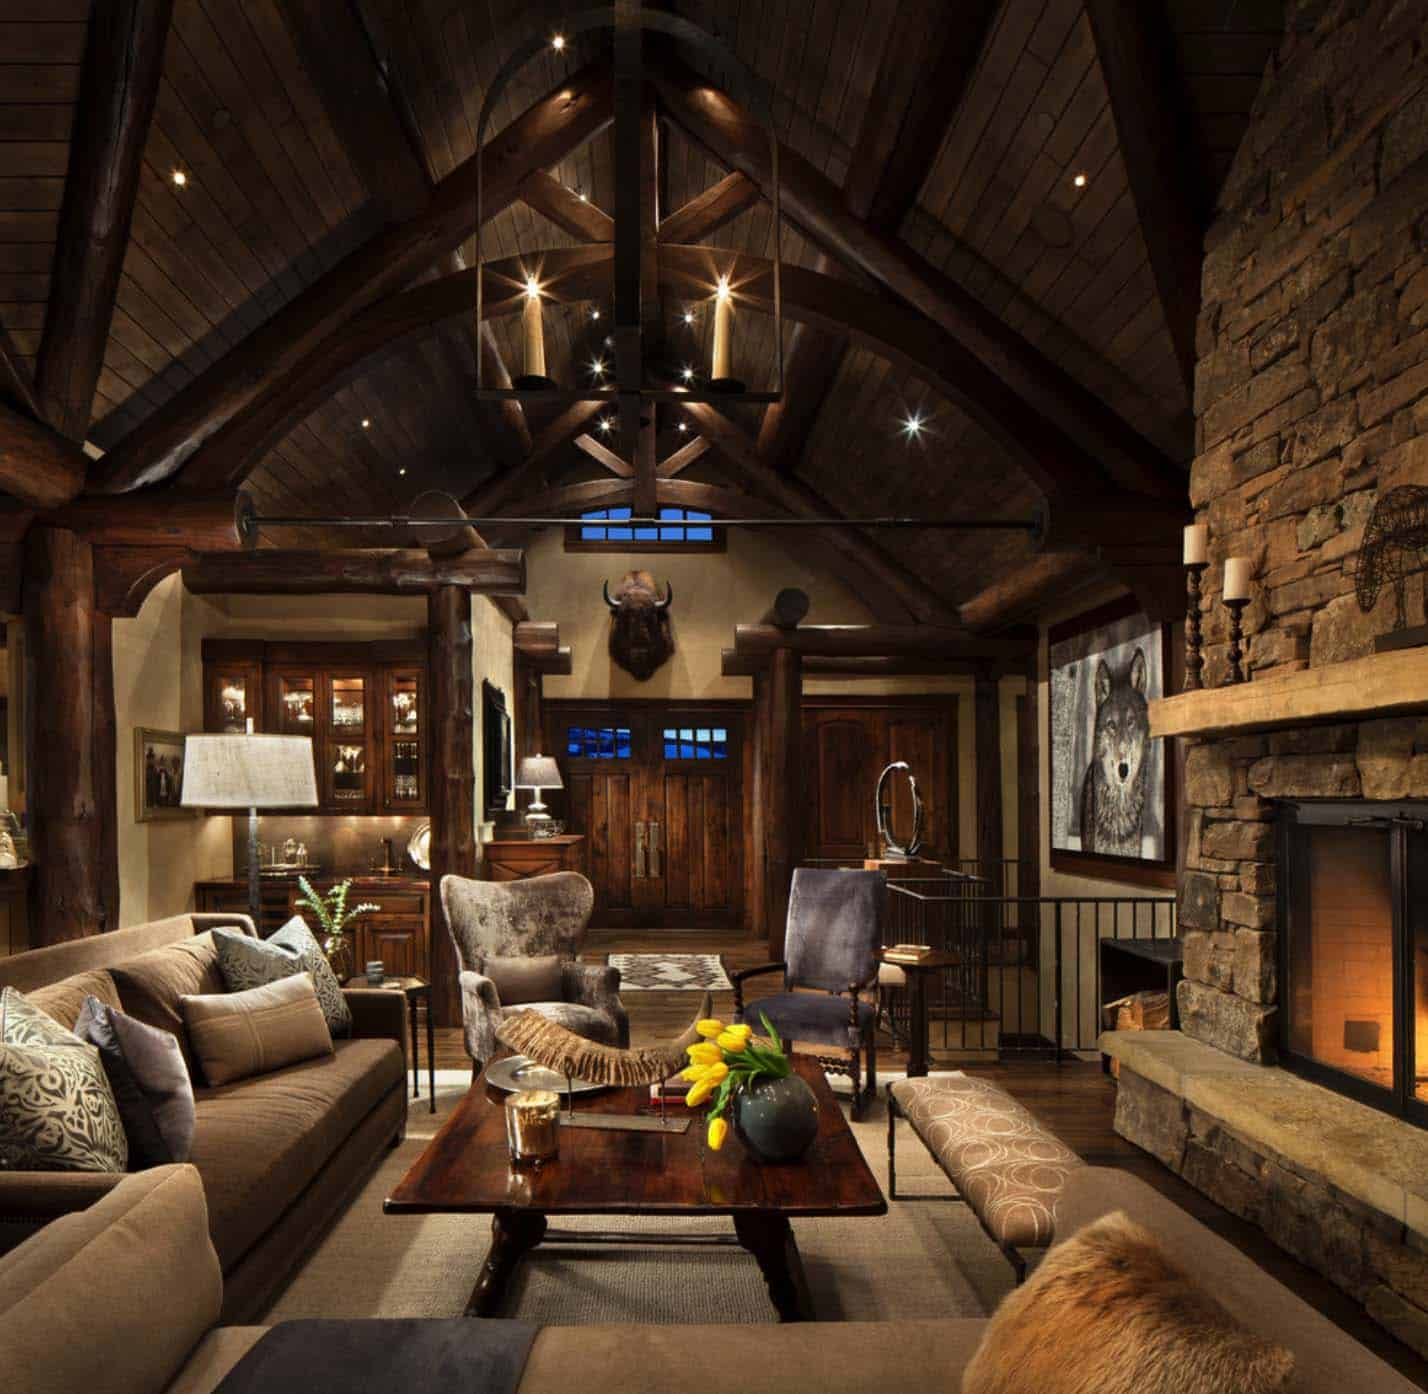 Exquisite mountain home remodel mixes rustic with modern